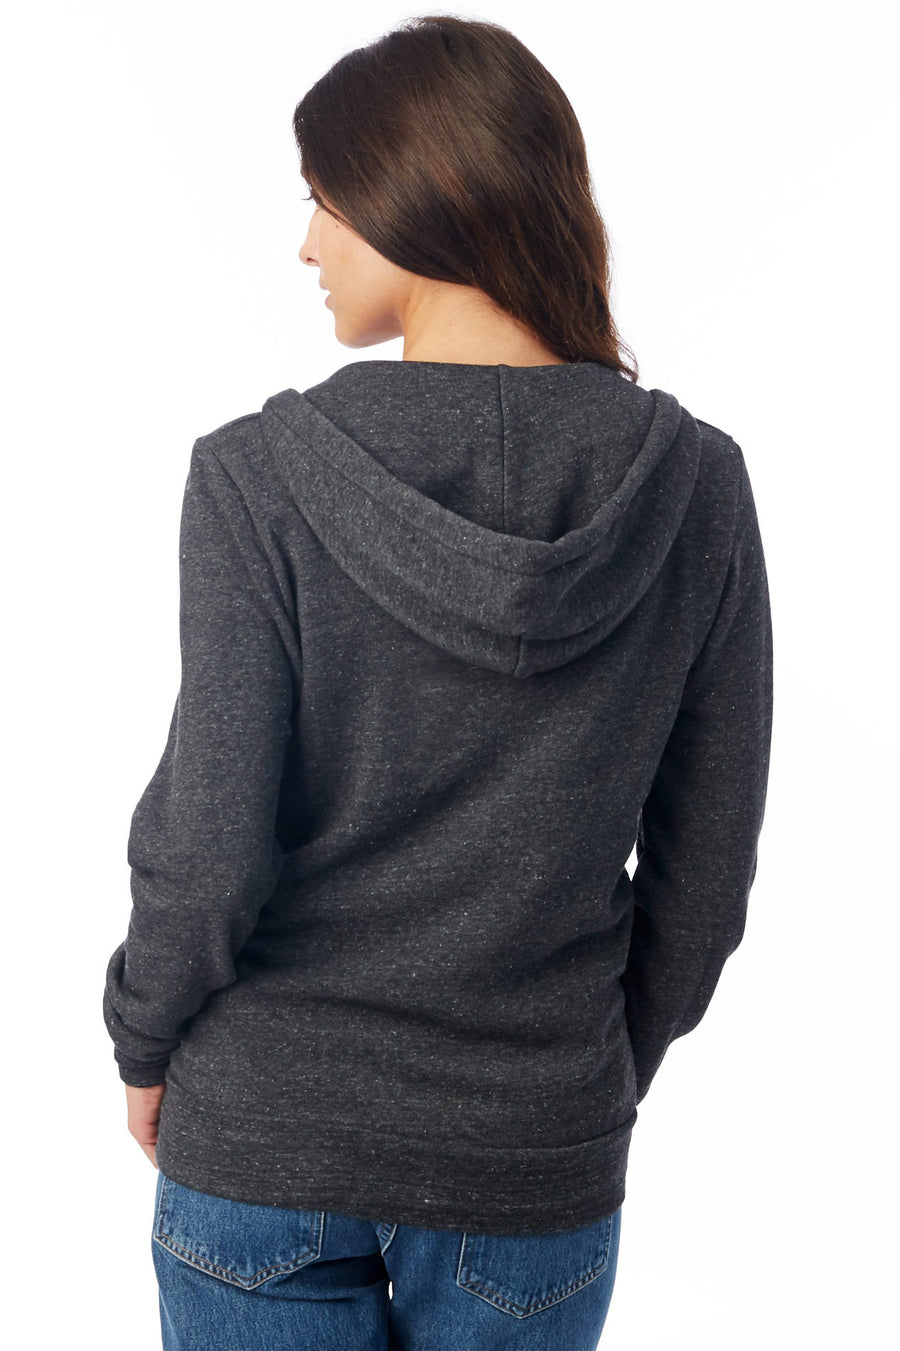 Unisex Rocky Eco-Fleece Zip Hoodie - Eco Black - Pavilion